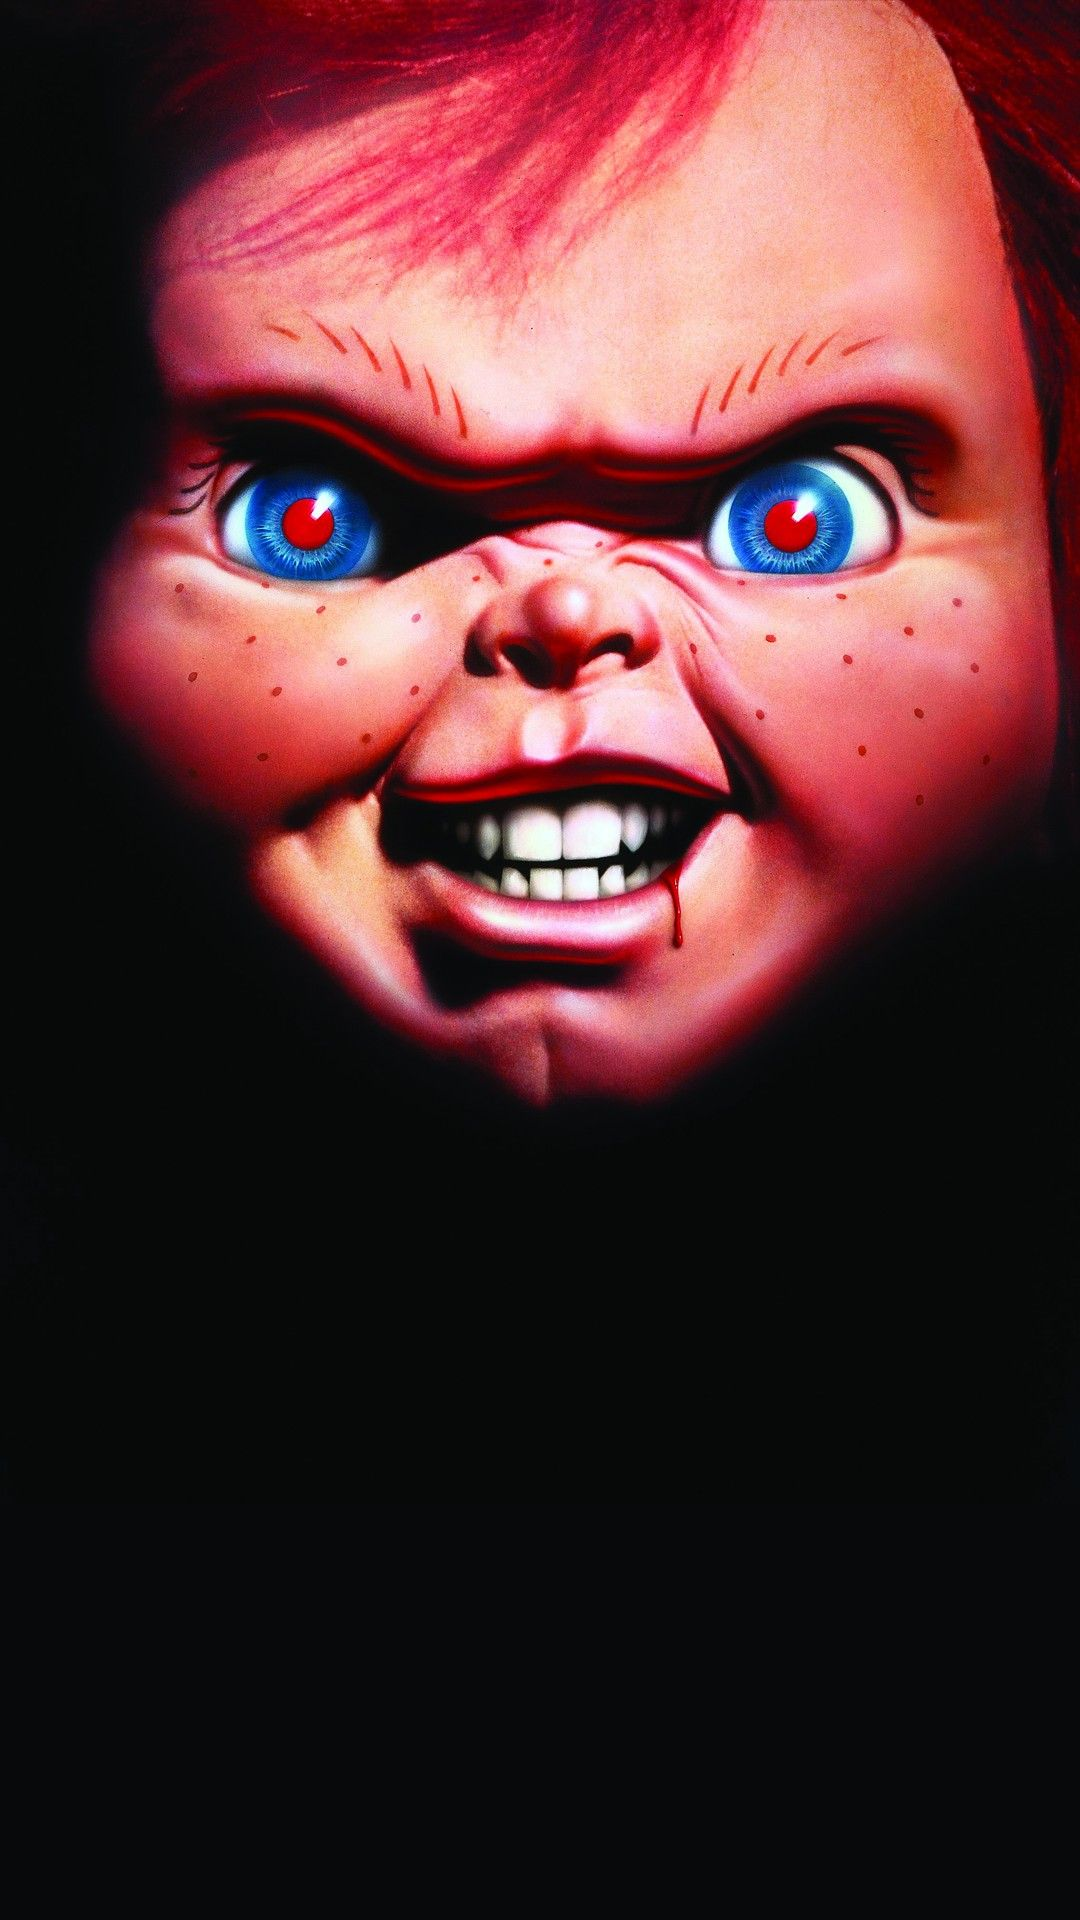 Chucky Scary Doll Phone Wallpaper HD Check more at https